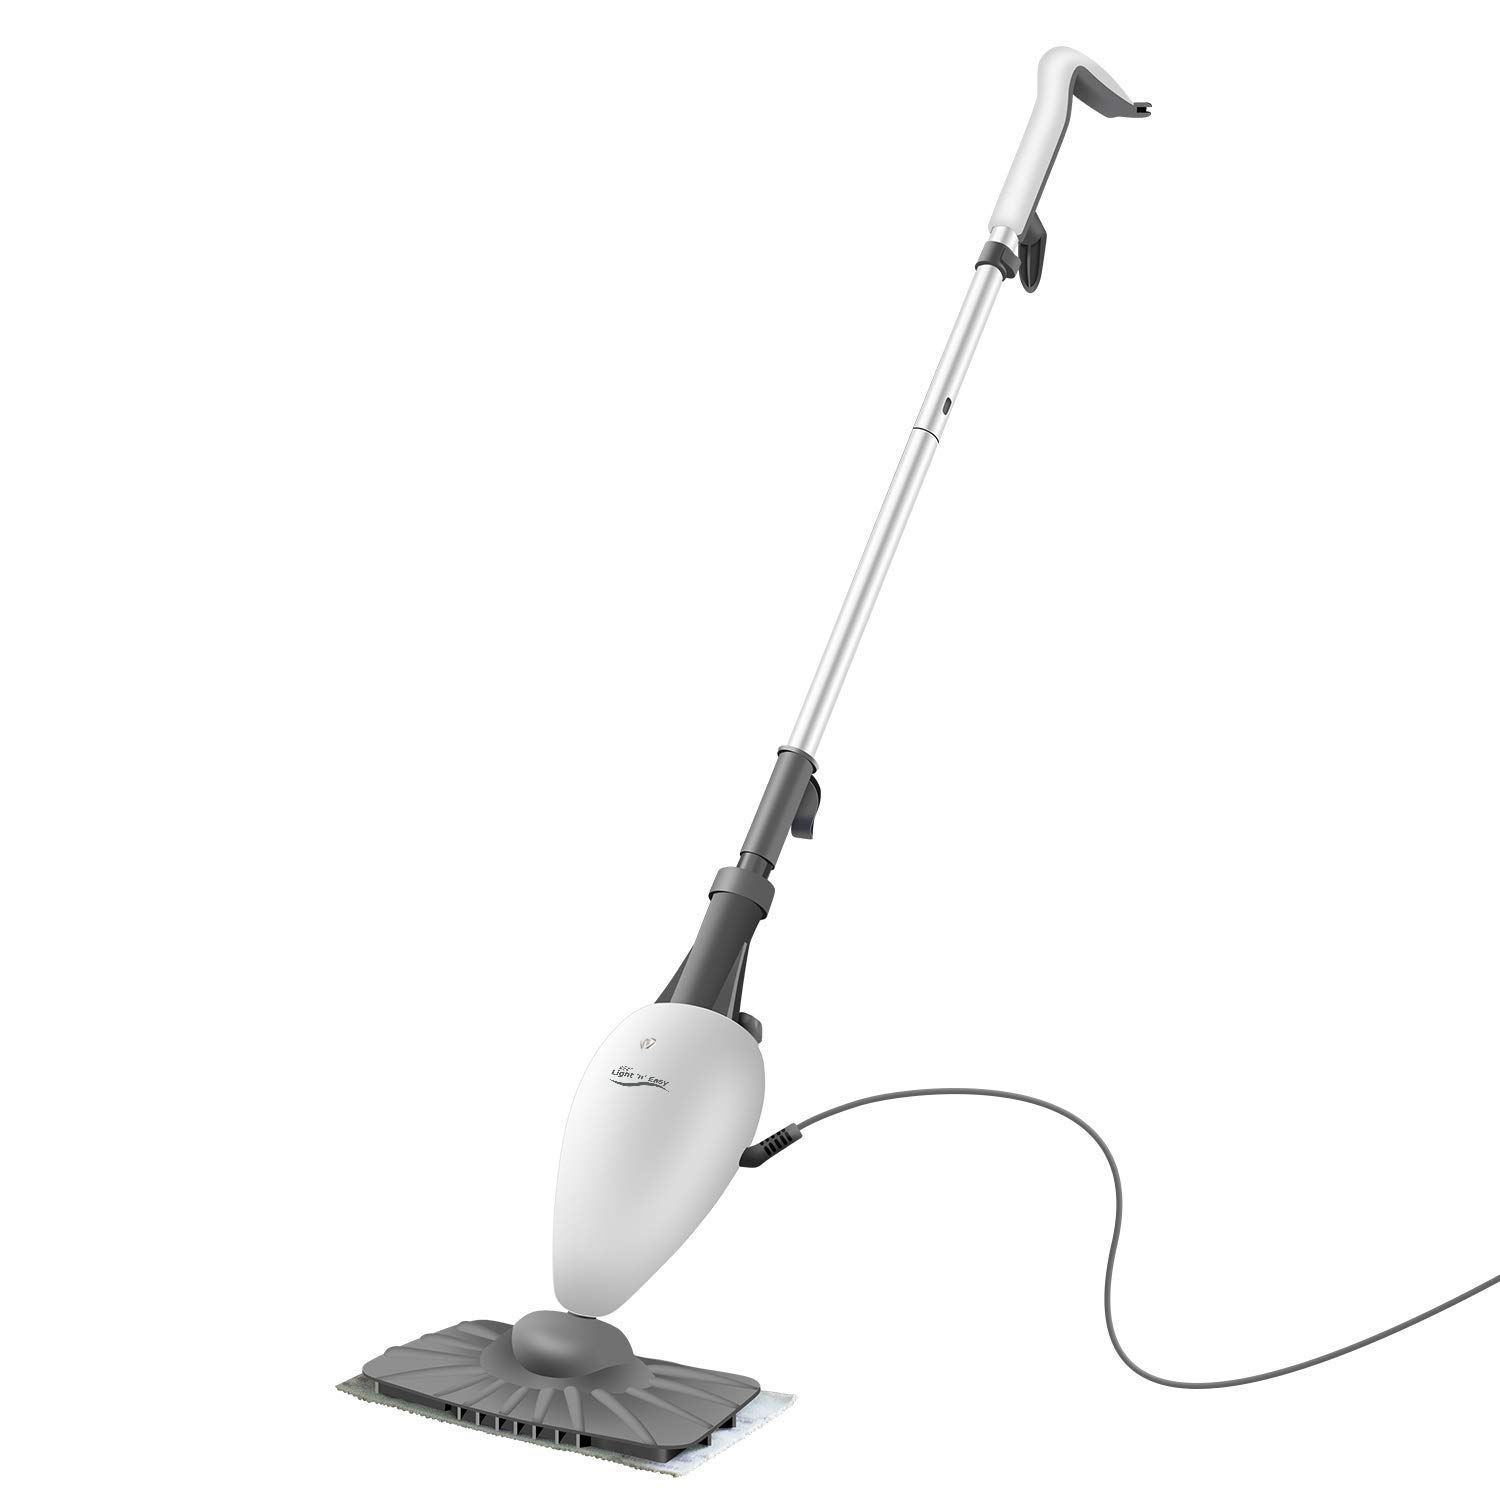 Best Steam Mop For Hardwood Floors 1